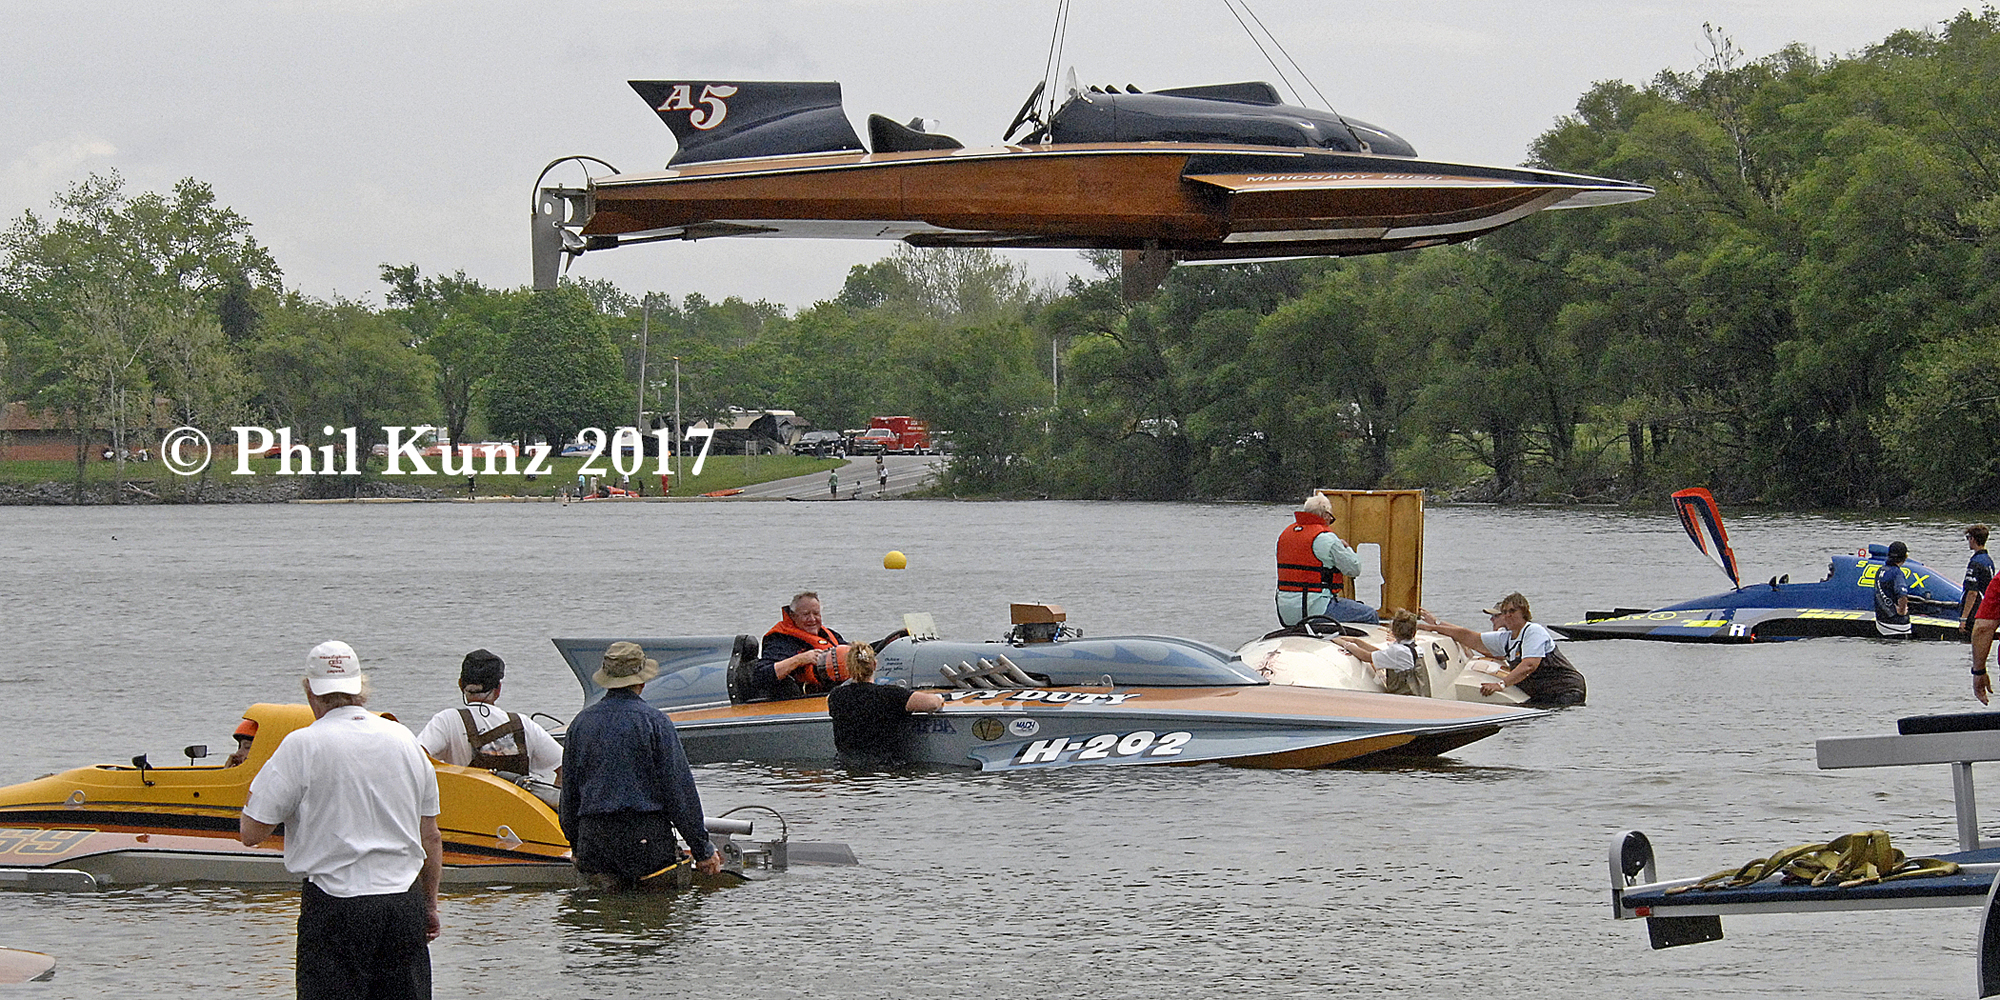 The Vintage Hydroplanes